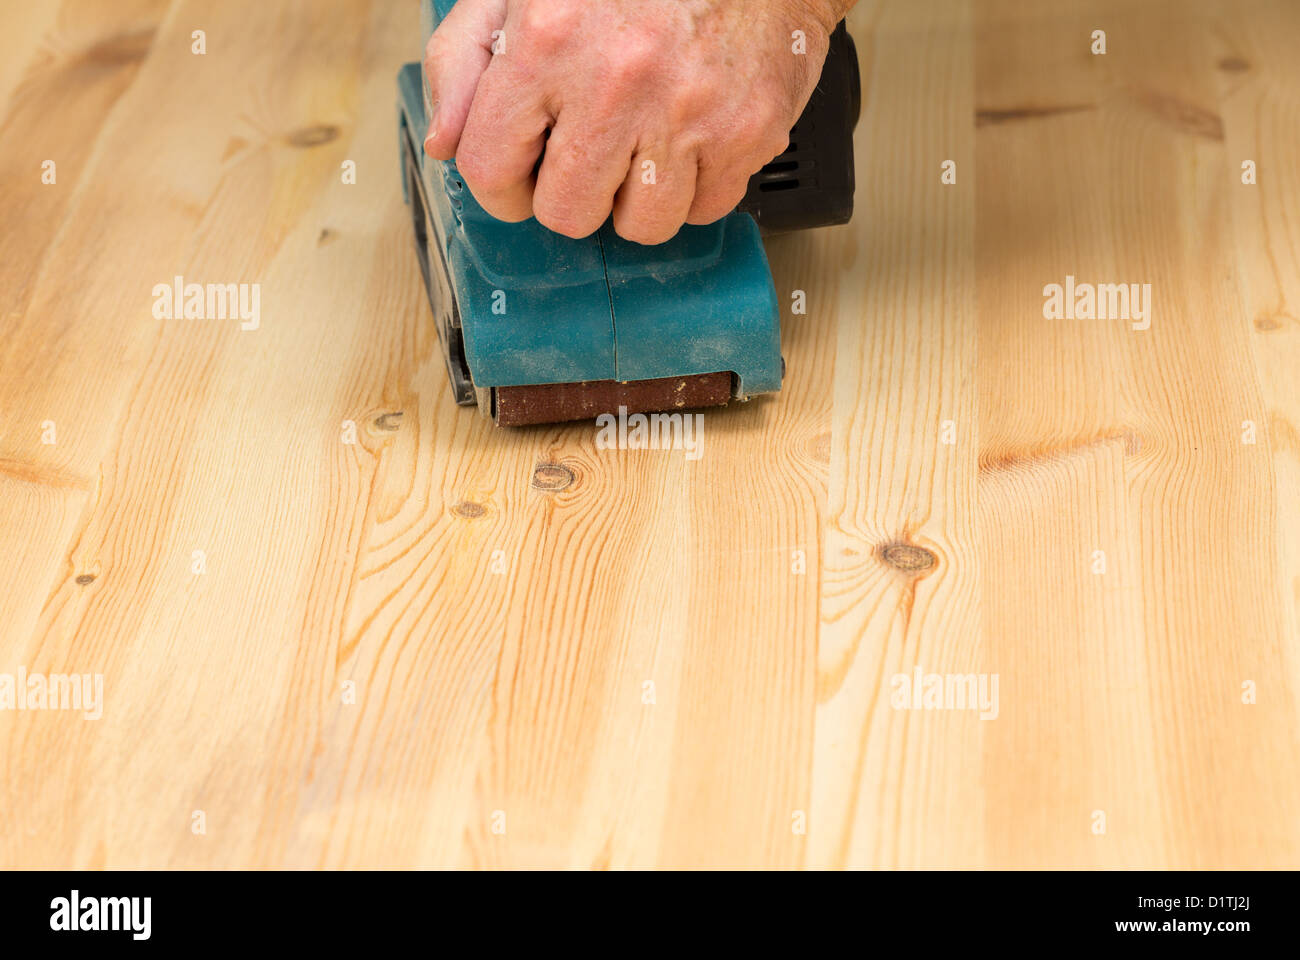 Man Holding A Belt Sander On Pine Floor Or Table Sanding Surface